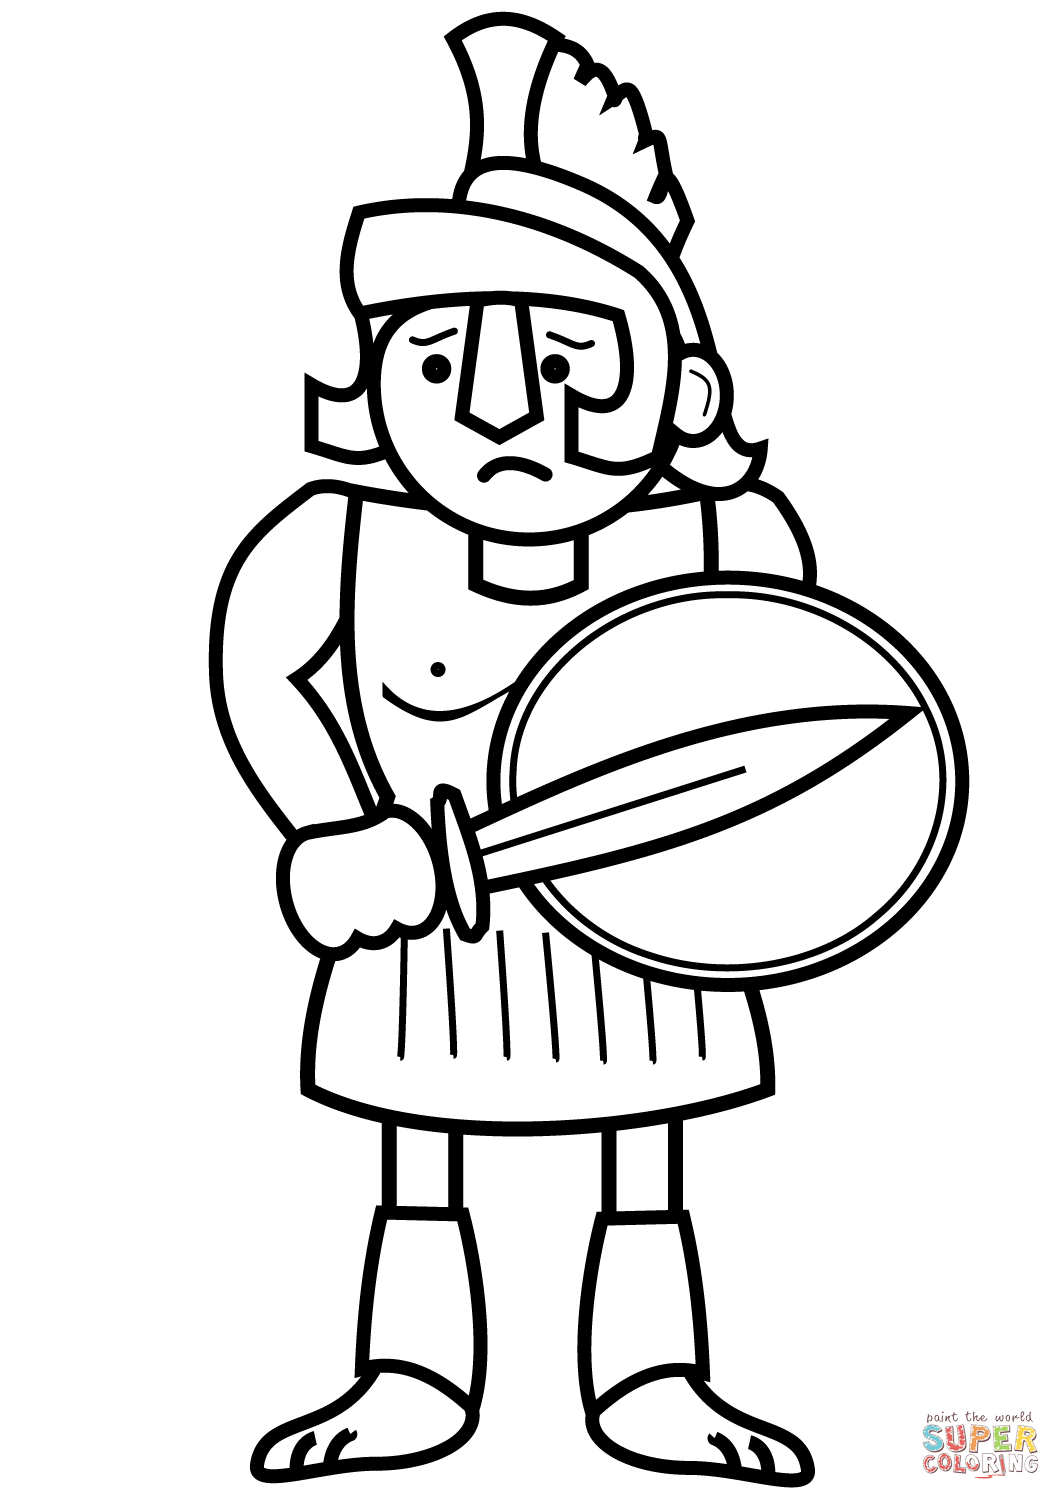 Msu Coloring Pages At Getcolorings